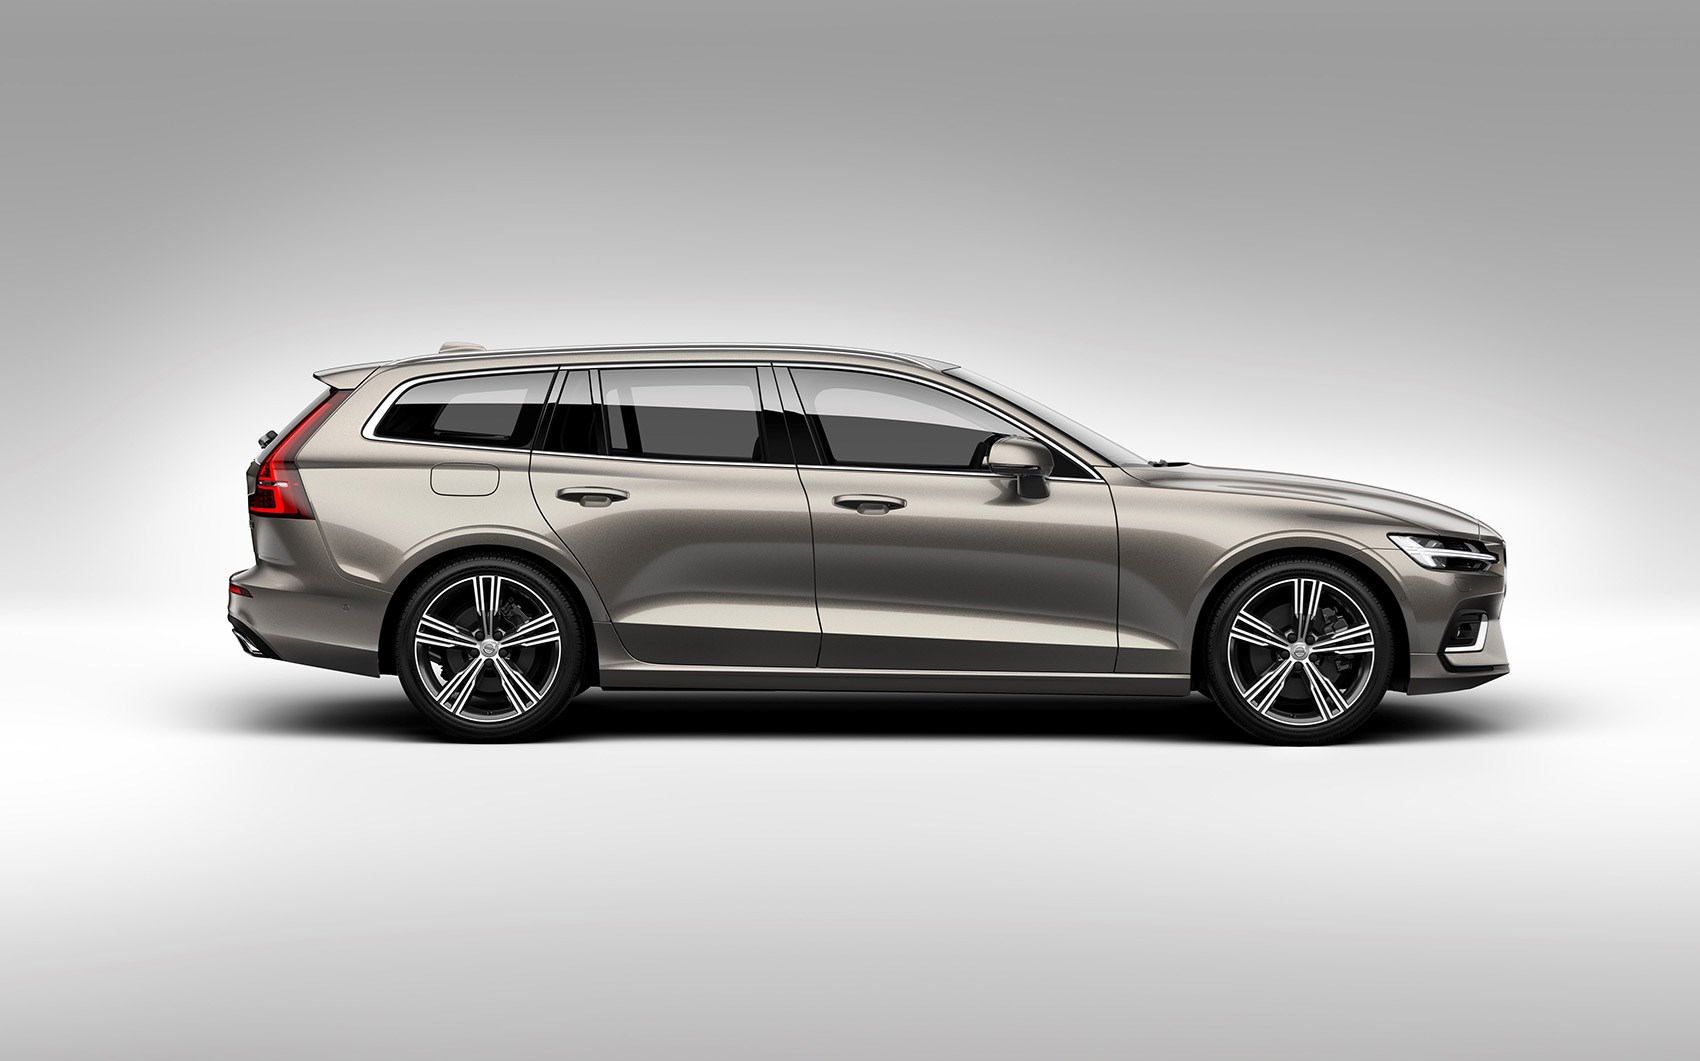 volvo v60 estate 2018 interior uk price and release date by car magazine. Black Bedroom Furniture Sets. Home Design Ideas